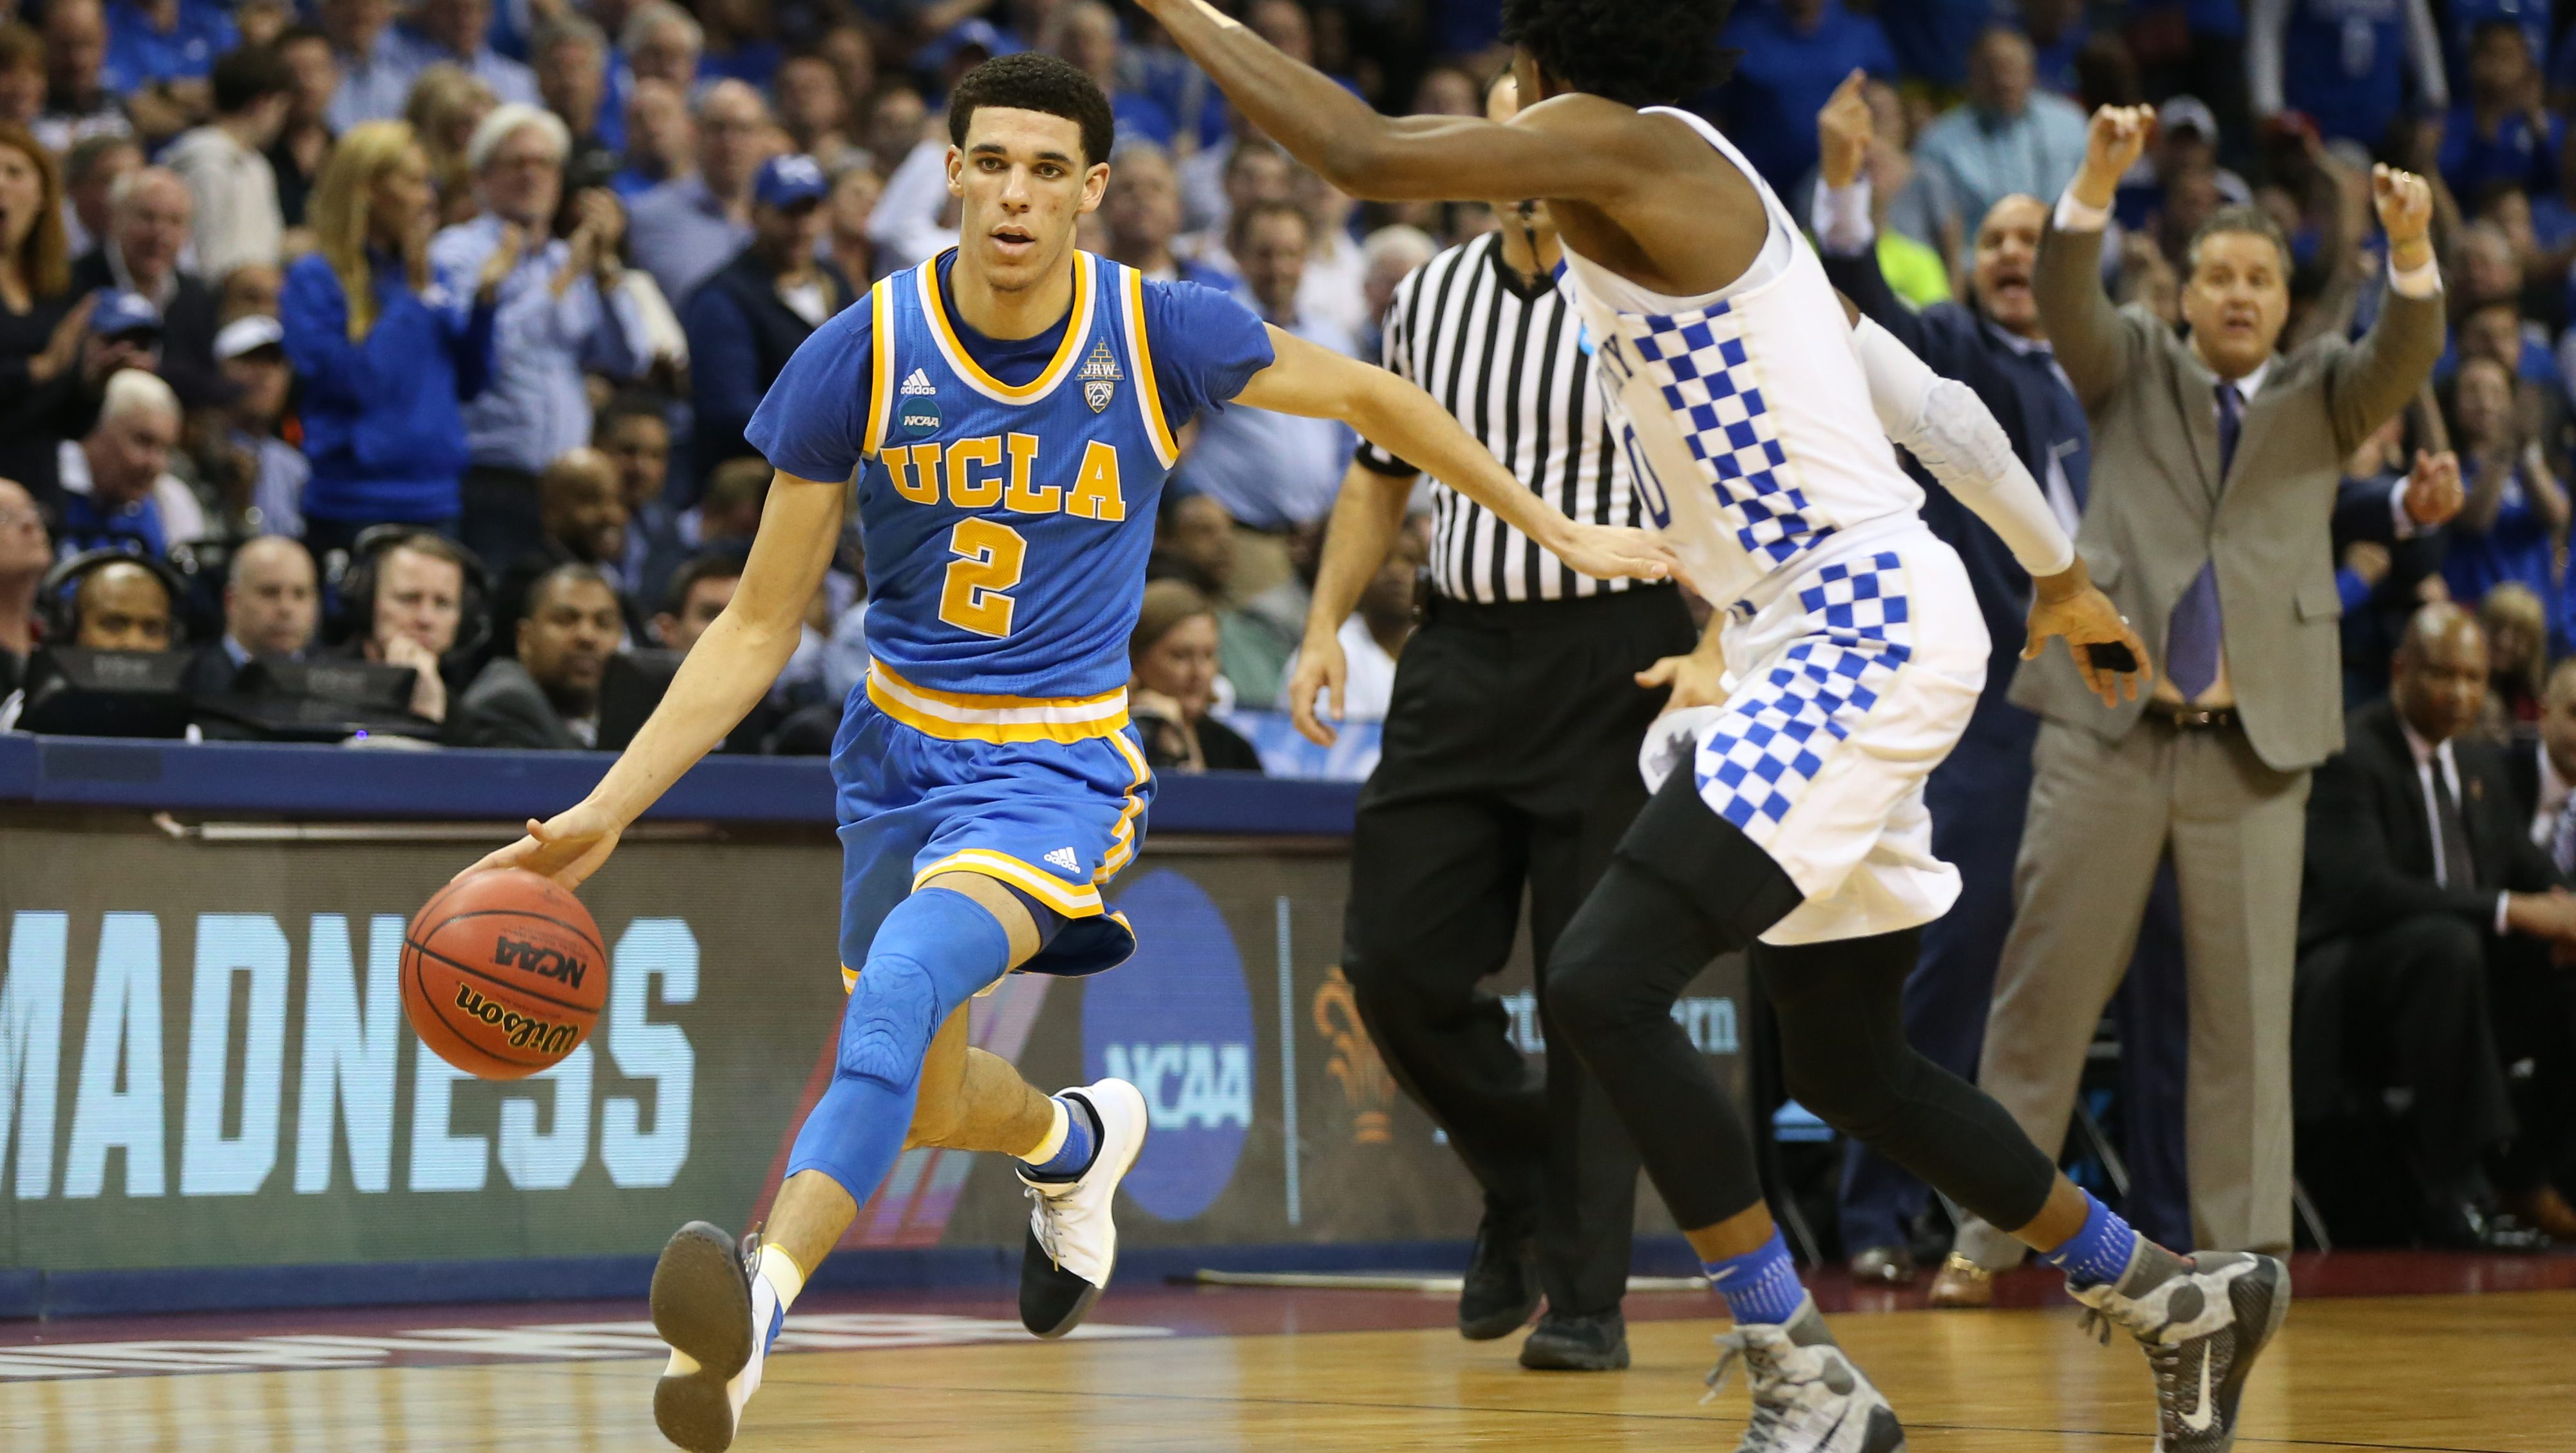 Mar 24, 2017; Memphis, TN, USA; UCLA Bruins guard Lonzo Ball (2) drives to the basket against Kentucky Wildcats guard De'Aaron Fox (0) in the second half during the semifinals of the South Regional of the 2017 NCAA Tournament at FedExForum. Mandatory Credit: Nelson Chenault-USA TODAY Sports - RTX32MPS